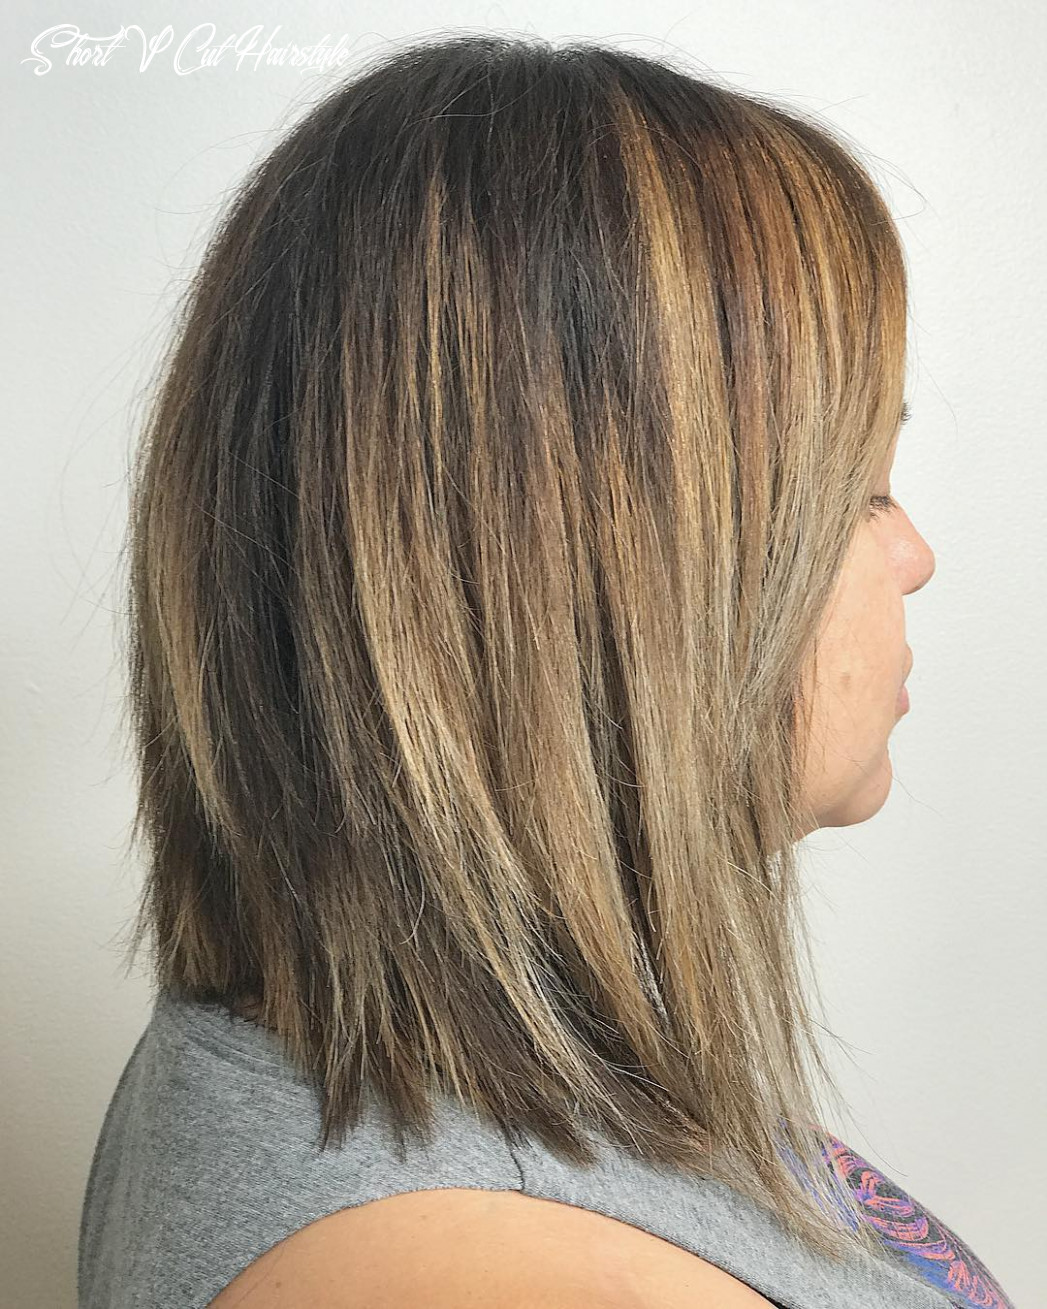 11 gorgeous short layered hairstyles for all hair types prochronism short v cut hairstyle